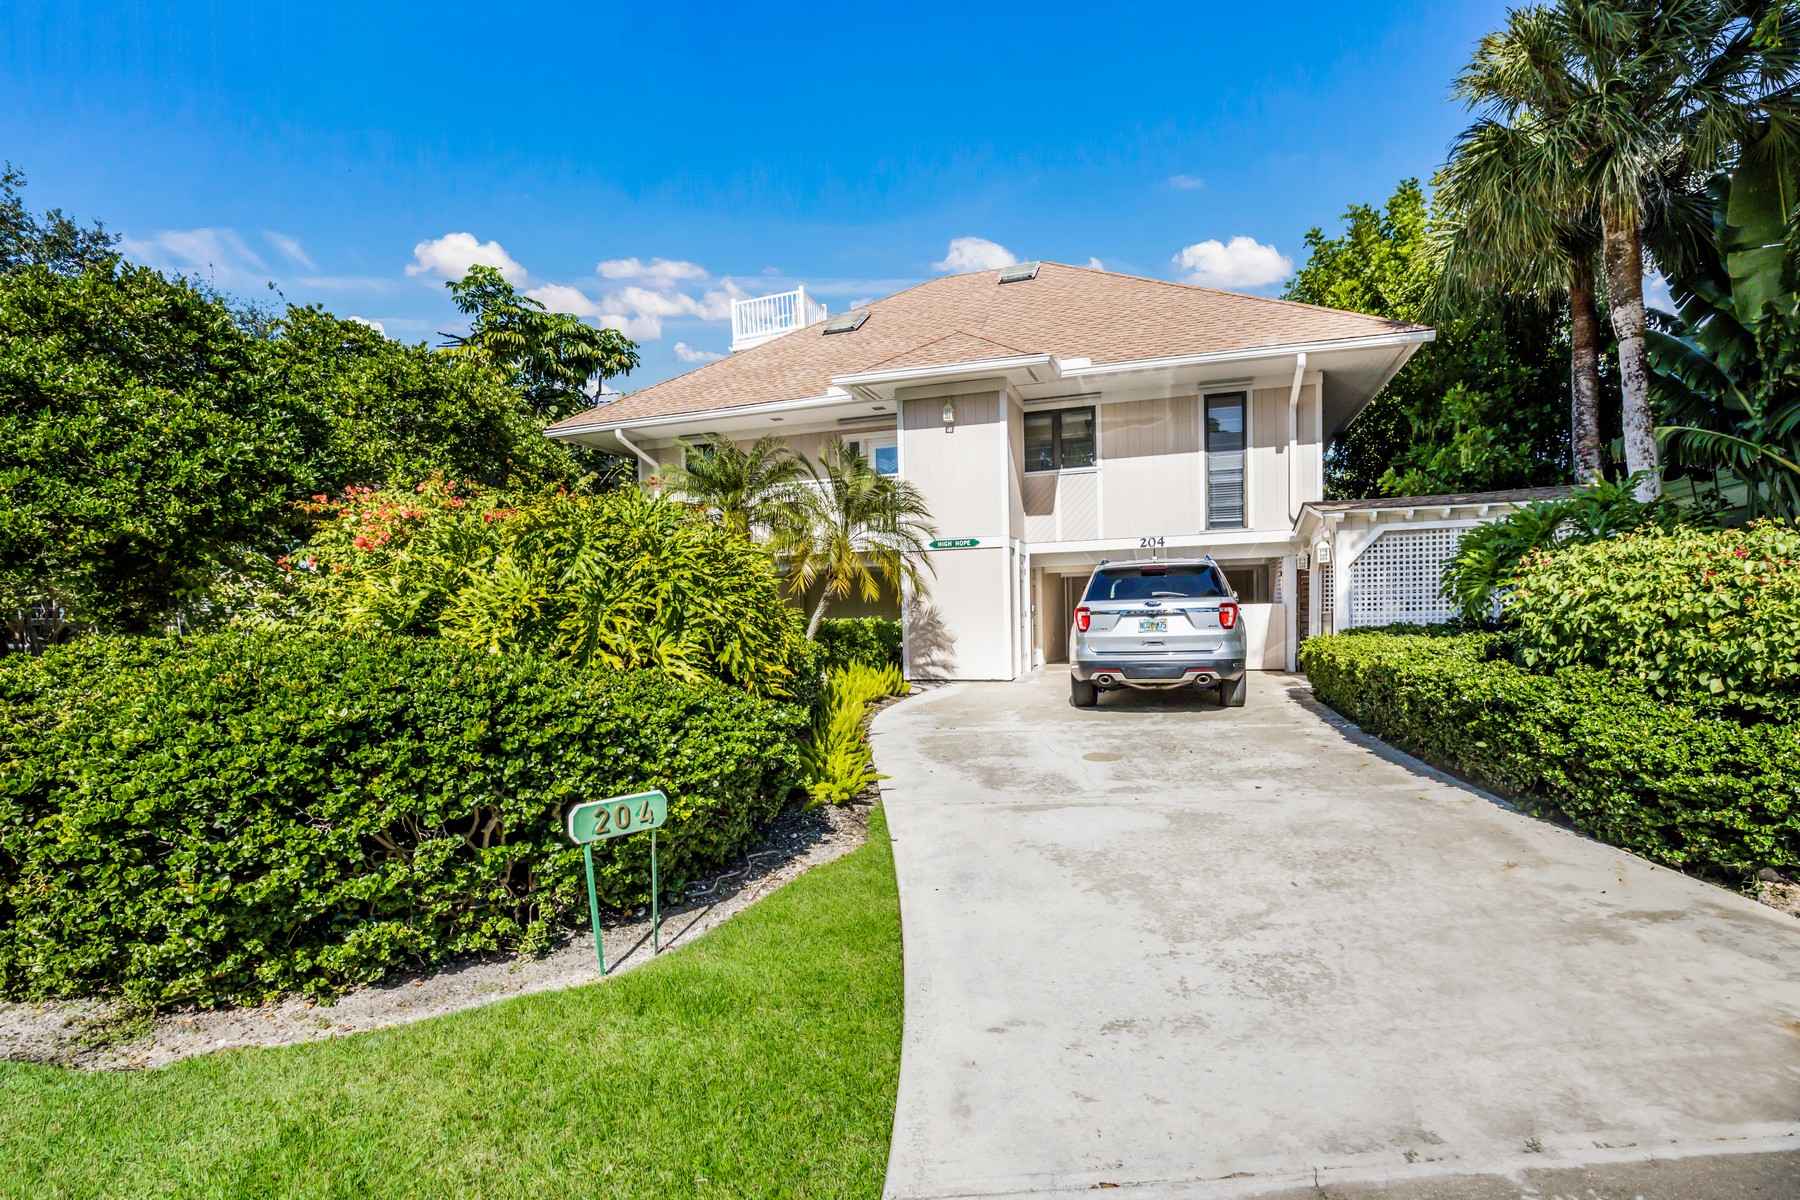 Single Family Homes for Sale at 204 Waterways Avenue Boca Grande, Florida 33921 United States